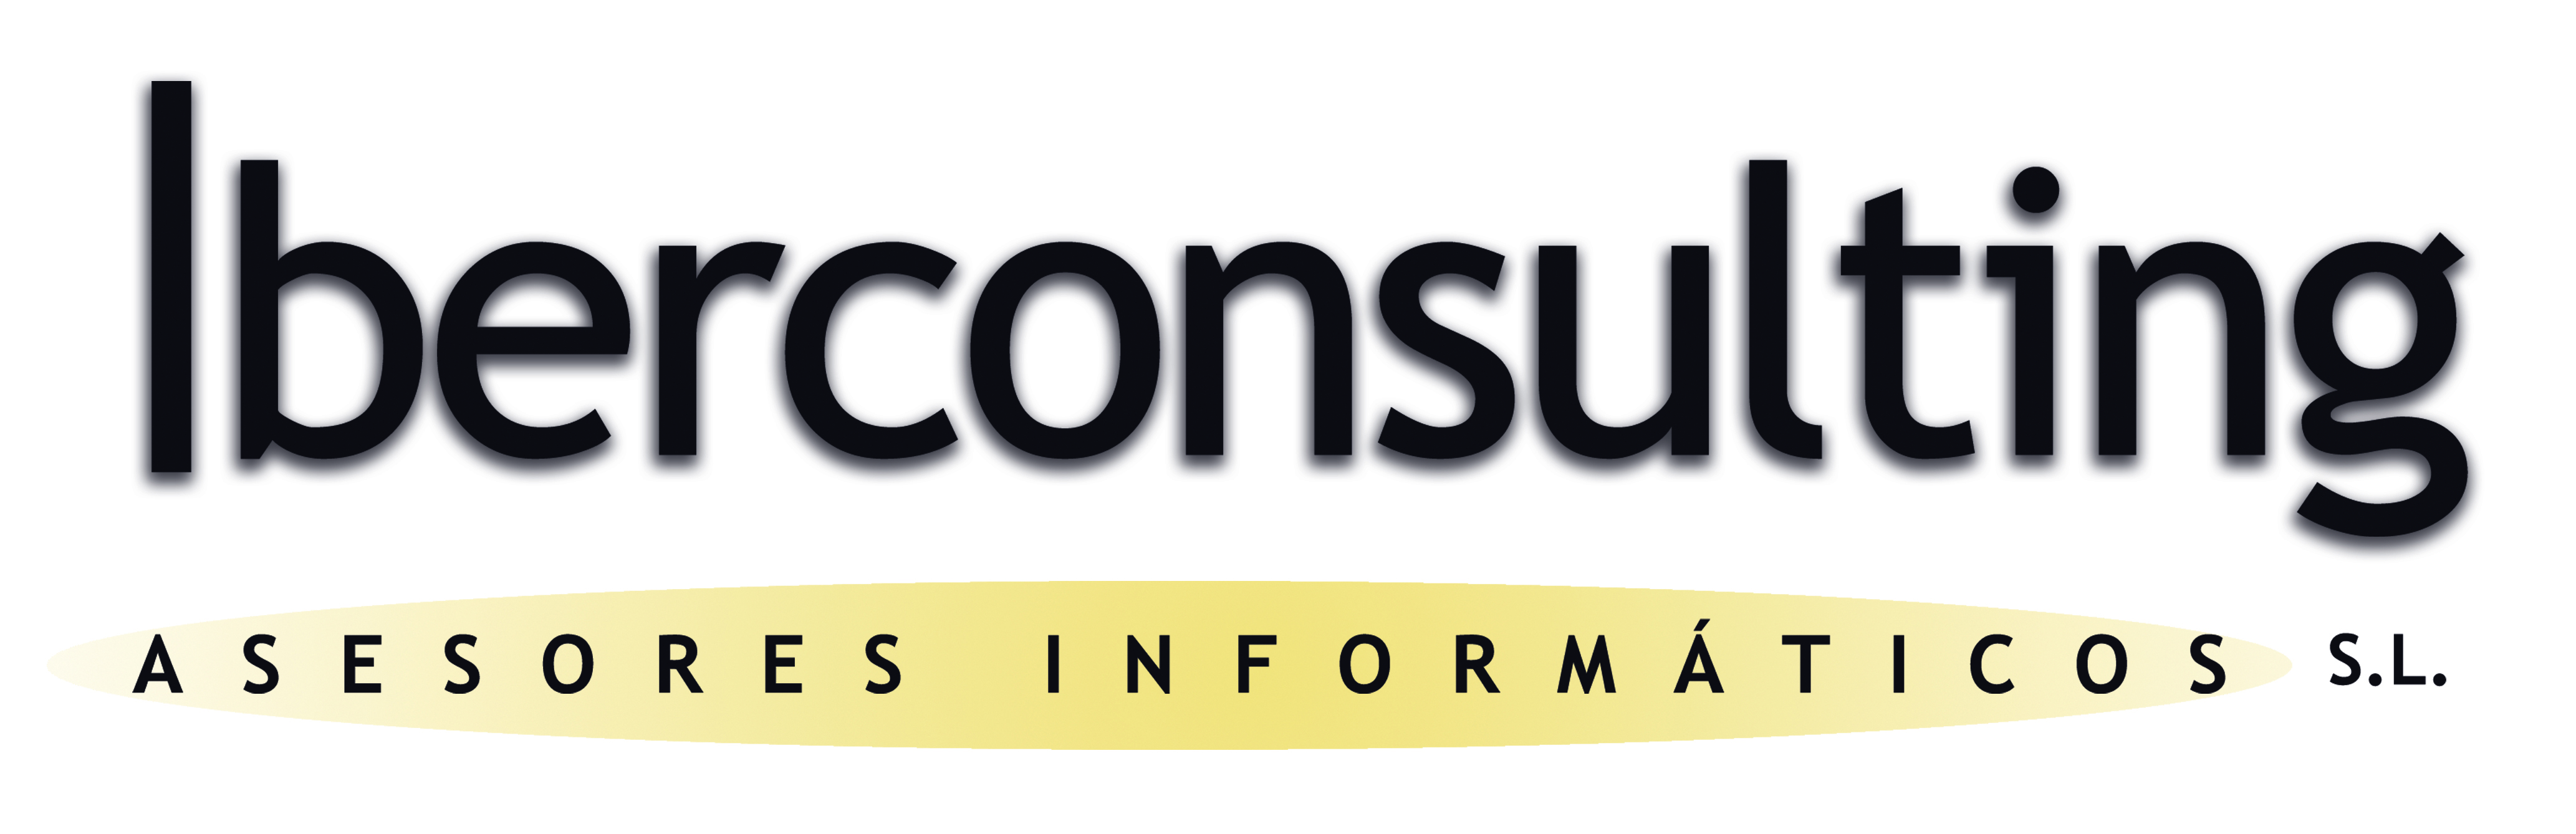 Iberconsulting, S.L.